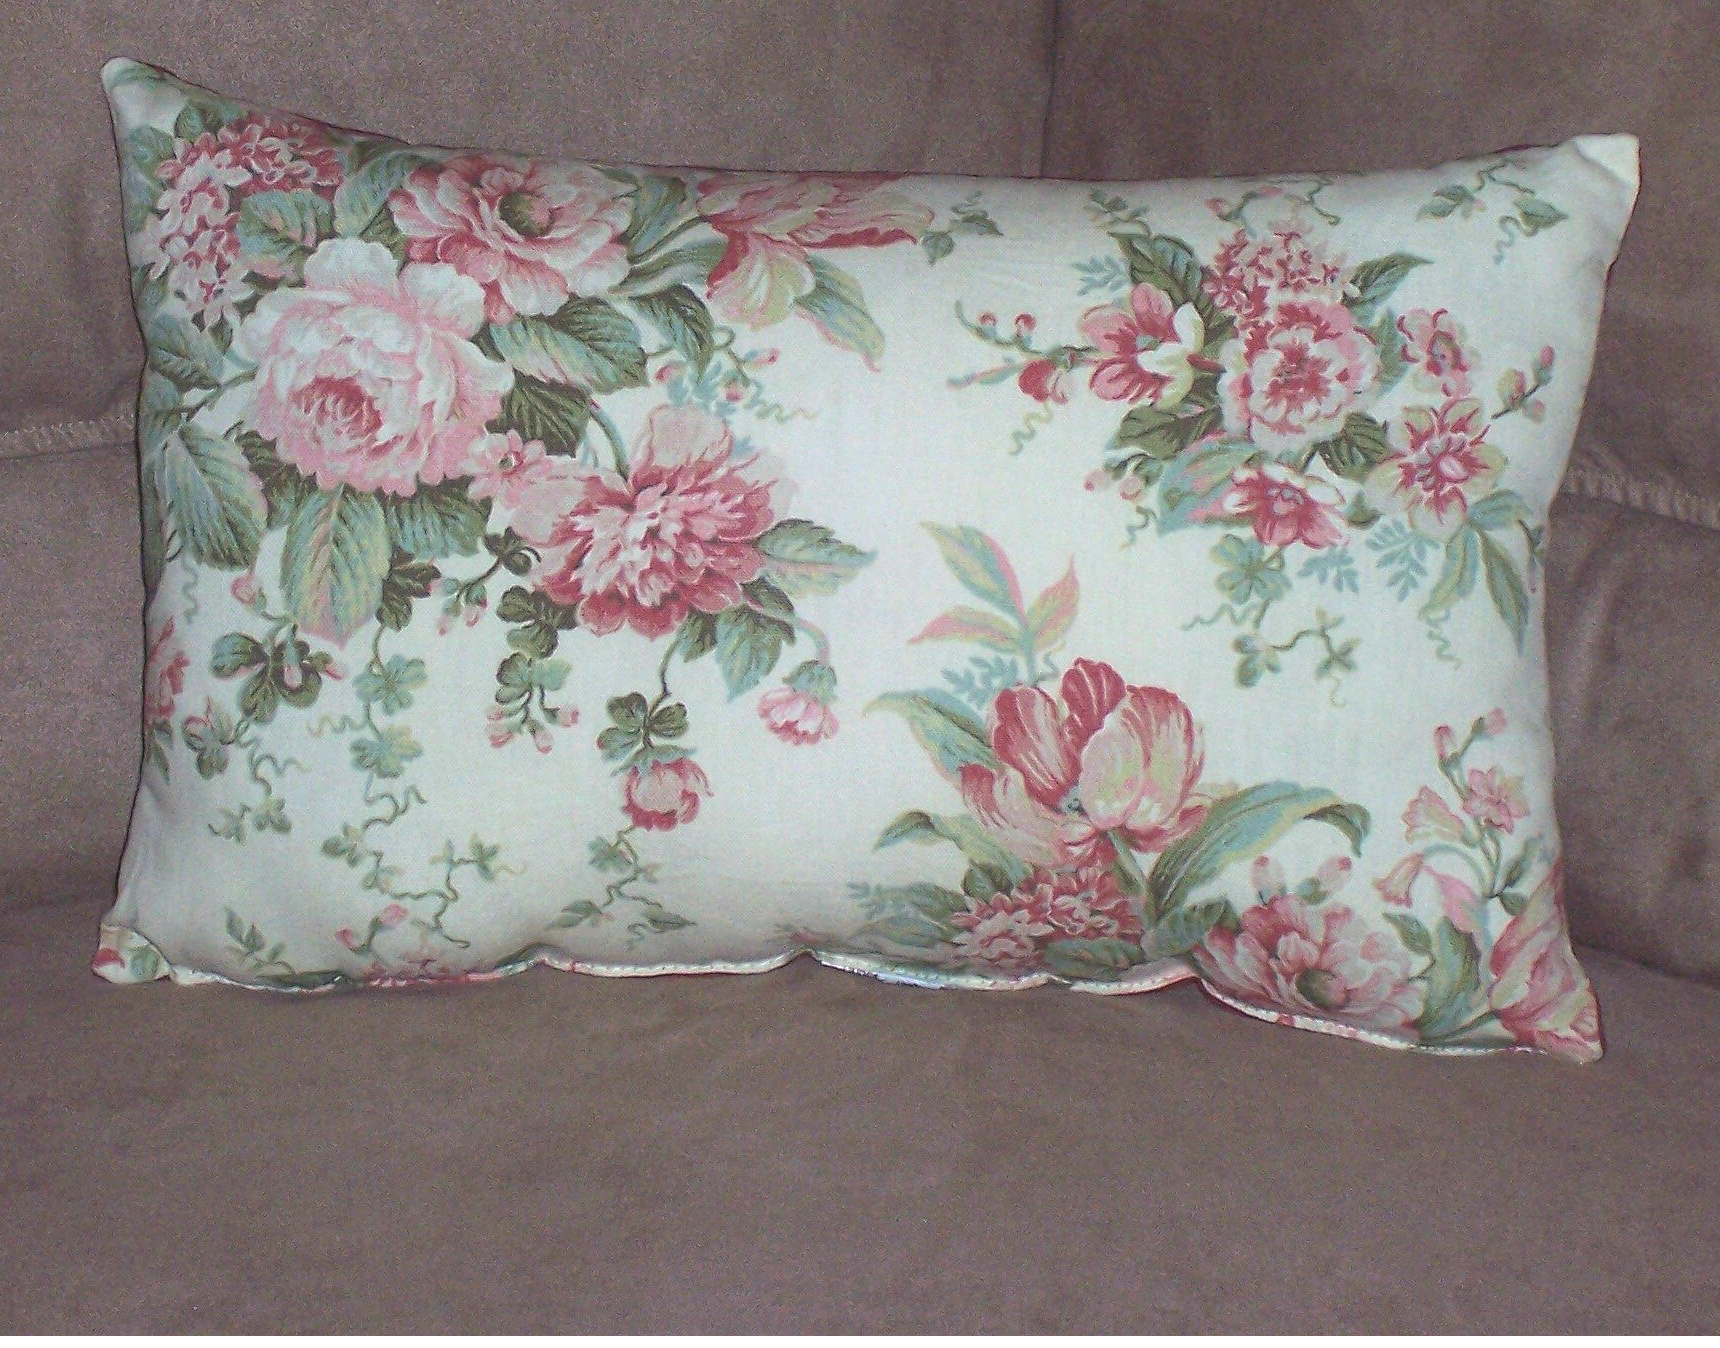 Throw Pillows For A Floral Couch : Floral Blossom Rectangle Throw Pillow Fashion Home Products